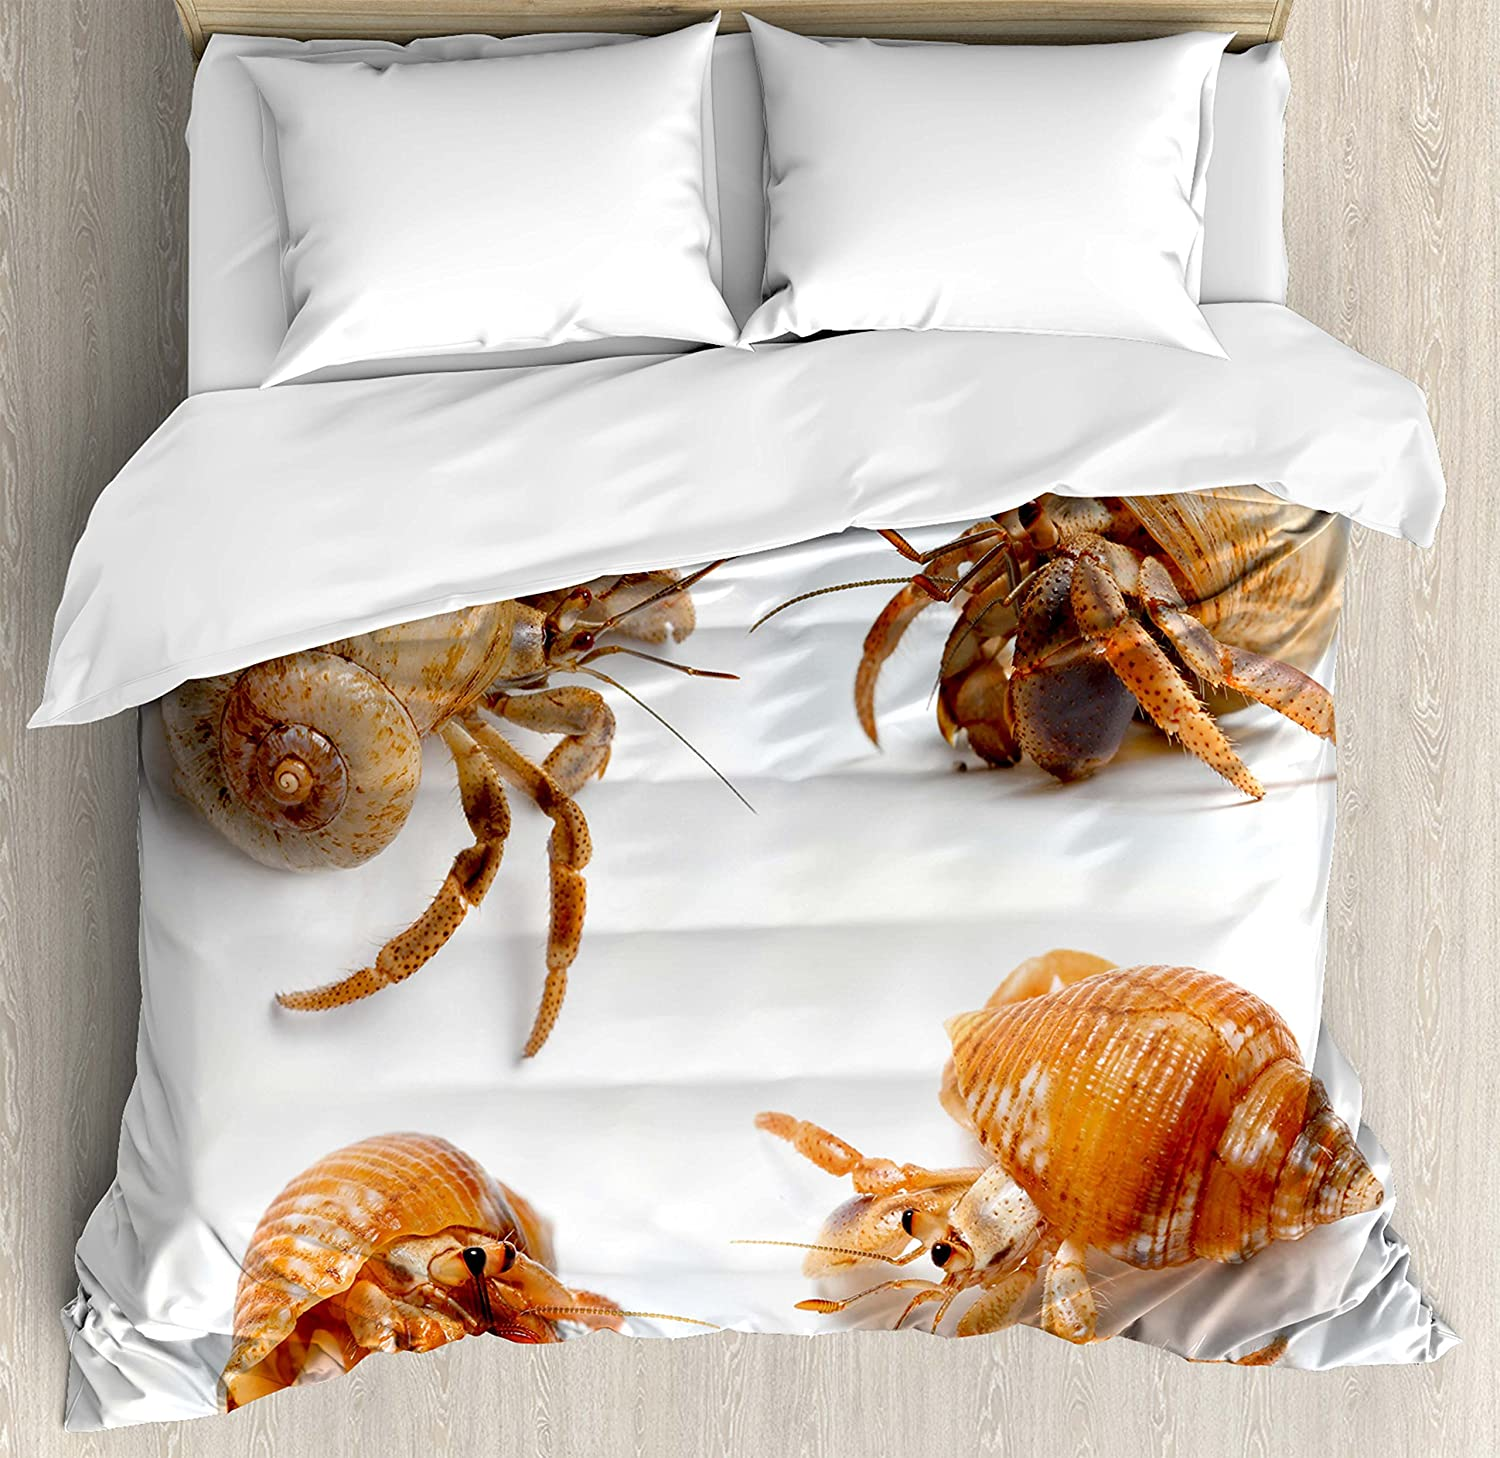 Amazon Com Ambesonne Crabs Duvet Cover Set Sea Animals Theme Hermit Crabs Pattern From Caribbean Seascape Digital Print Decorative 3 Piece Bedding Set With 2 Pillow Shams Queen Size Marigold And White Home